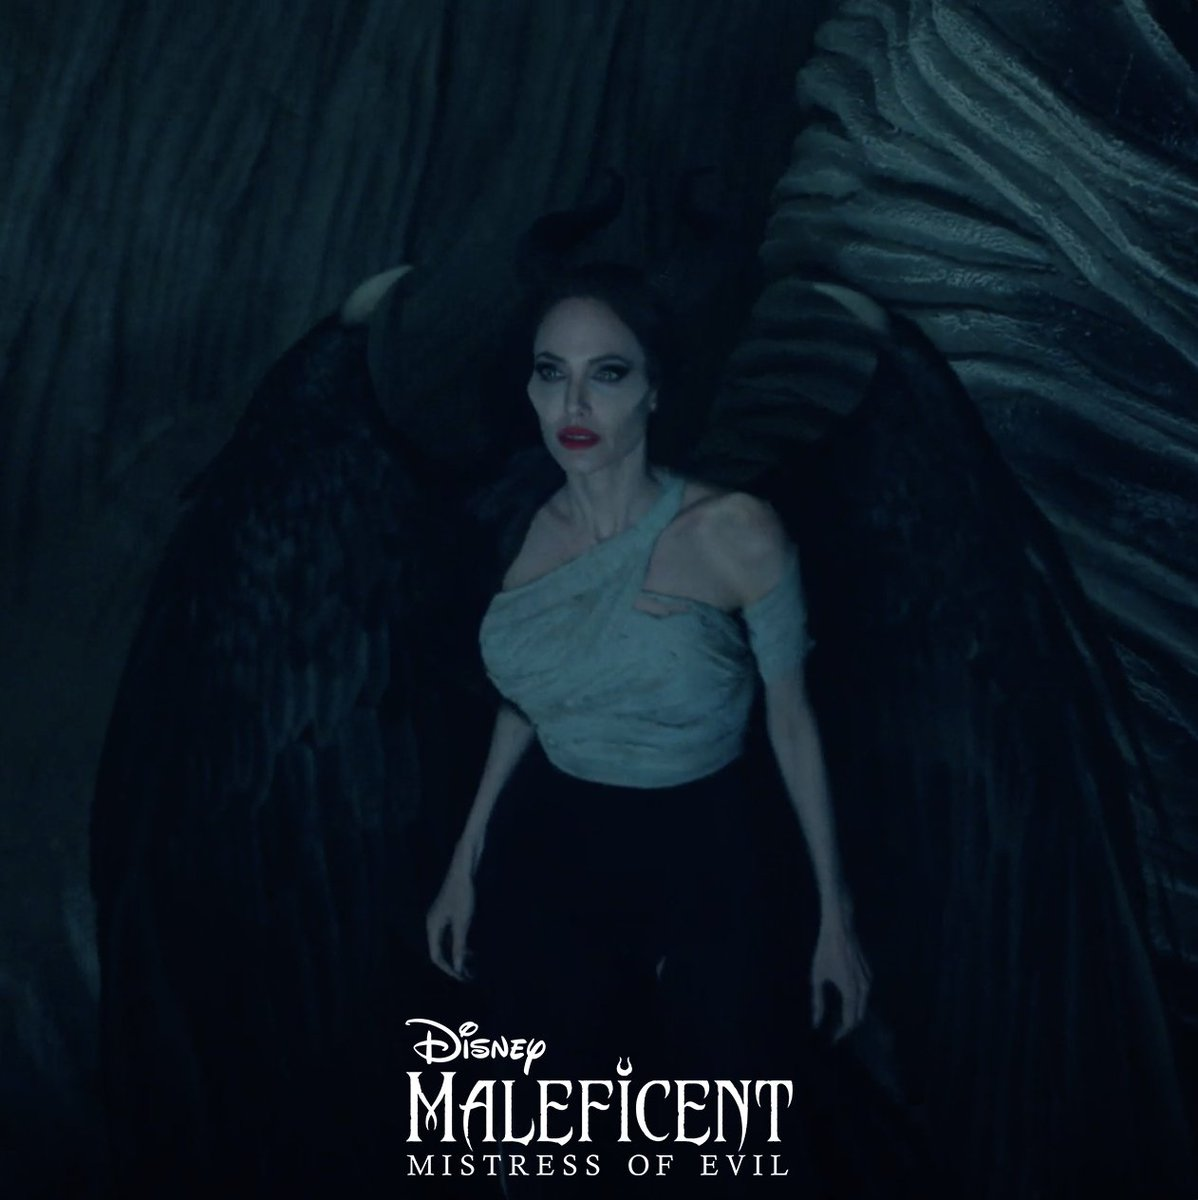 You have a choice, Maleficent. Be one of the first to see #Maleficent: Mistress of Evil tonight! di.sn/60091Gvml